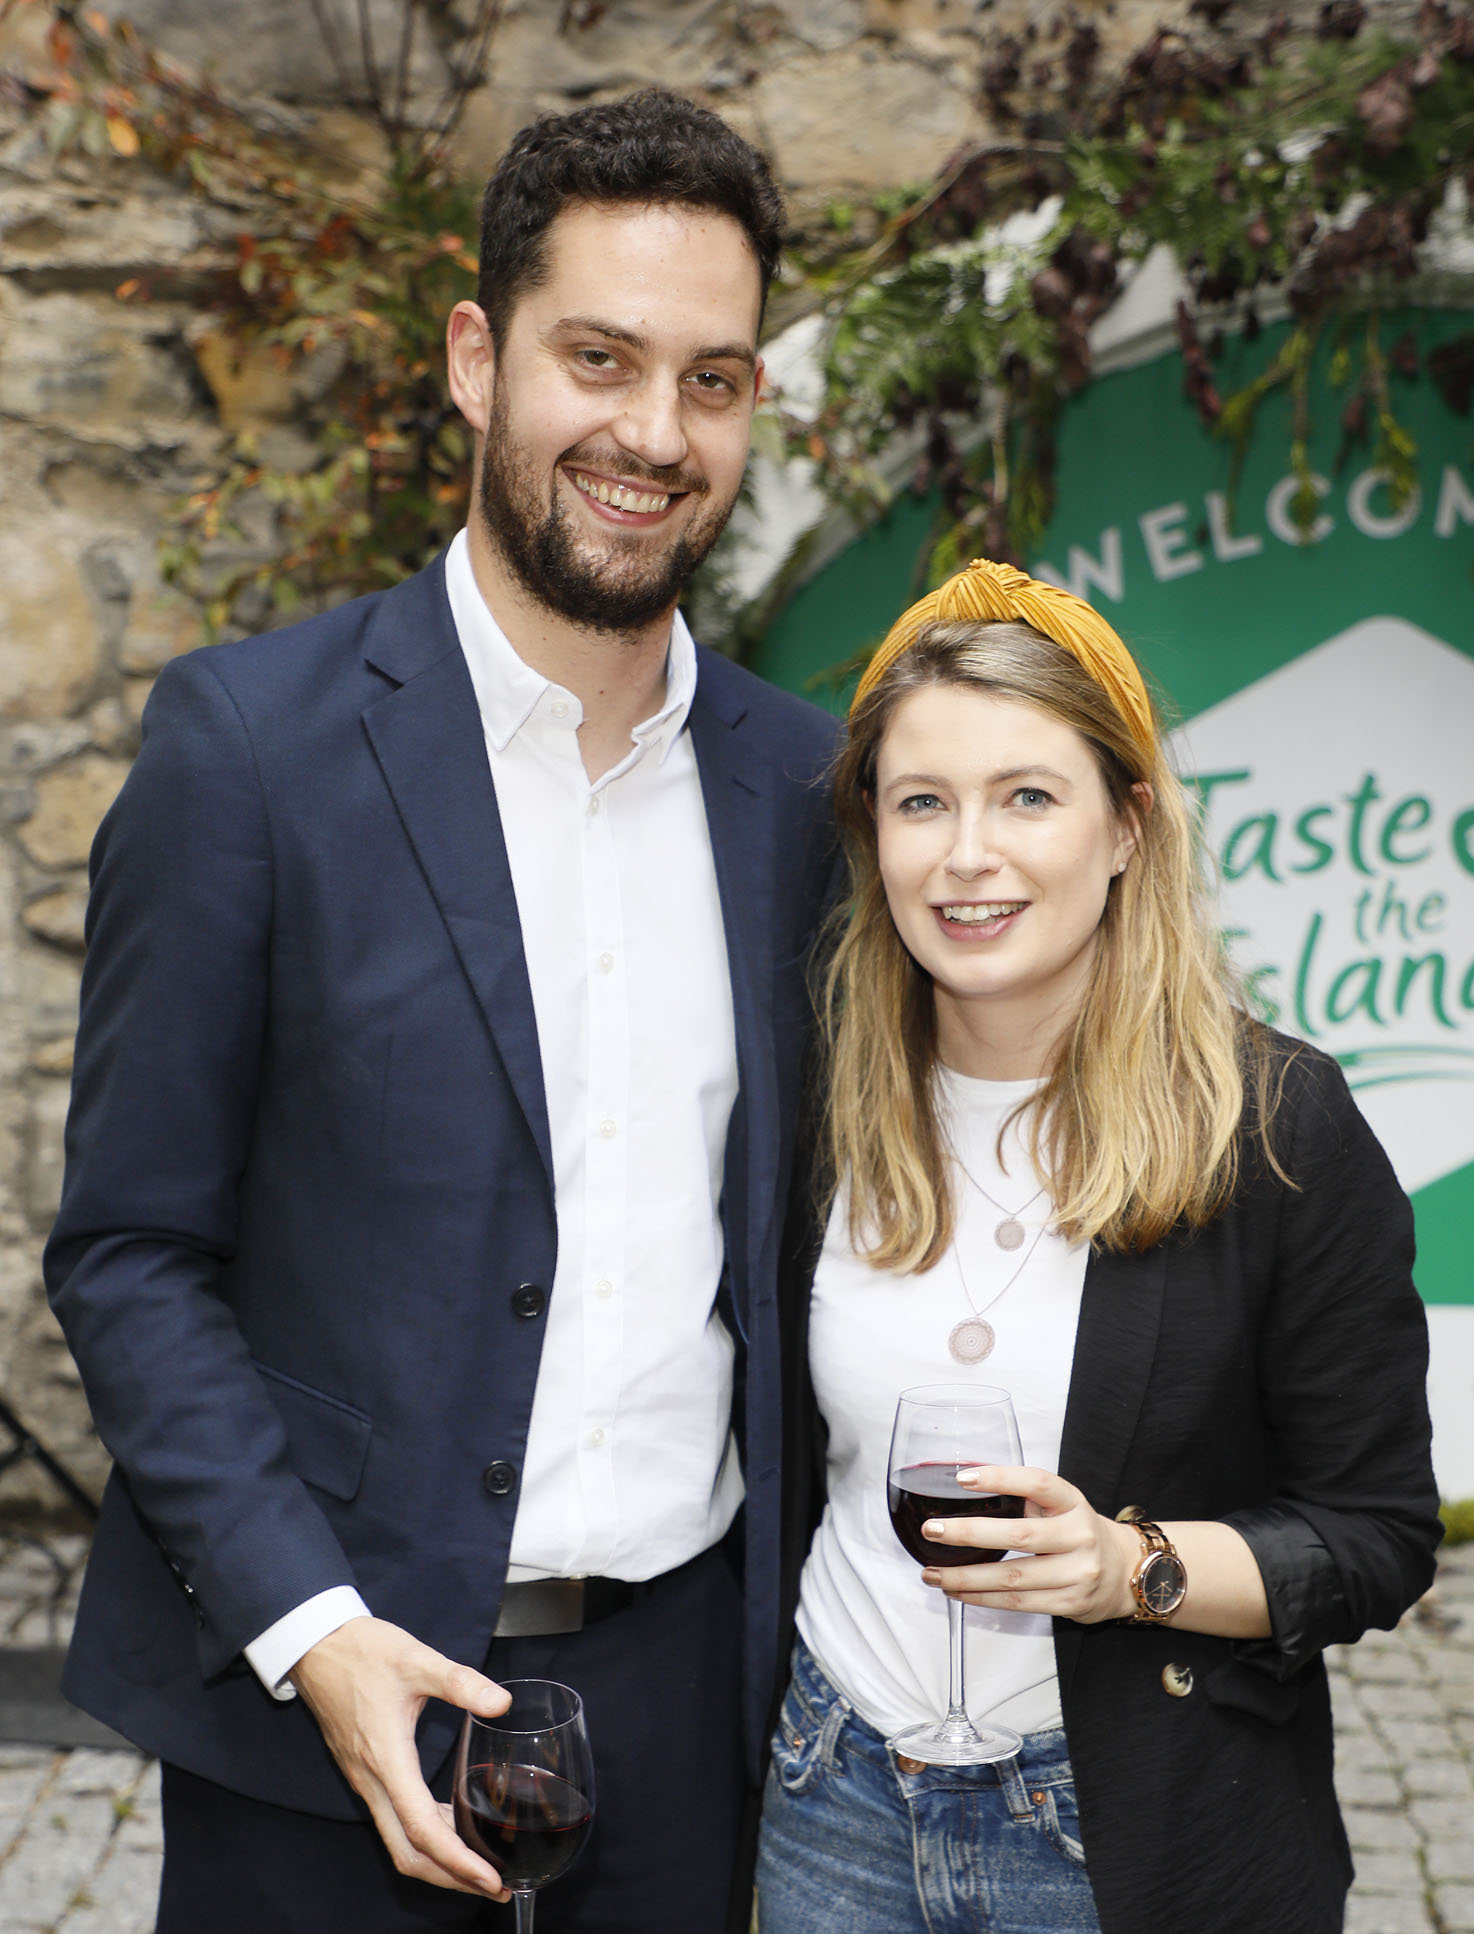 Kevin Meighan and Hannah Popham at the launch of Taste the Island, a 12 week celebration of Ireland's seasonal ingredients, adventurous tastes and bold experiences taking place this September, October and November. Photo: Kieran Harnett